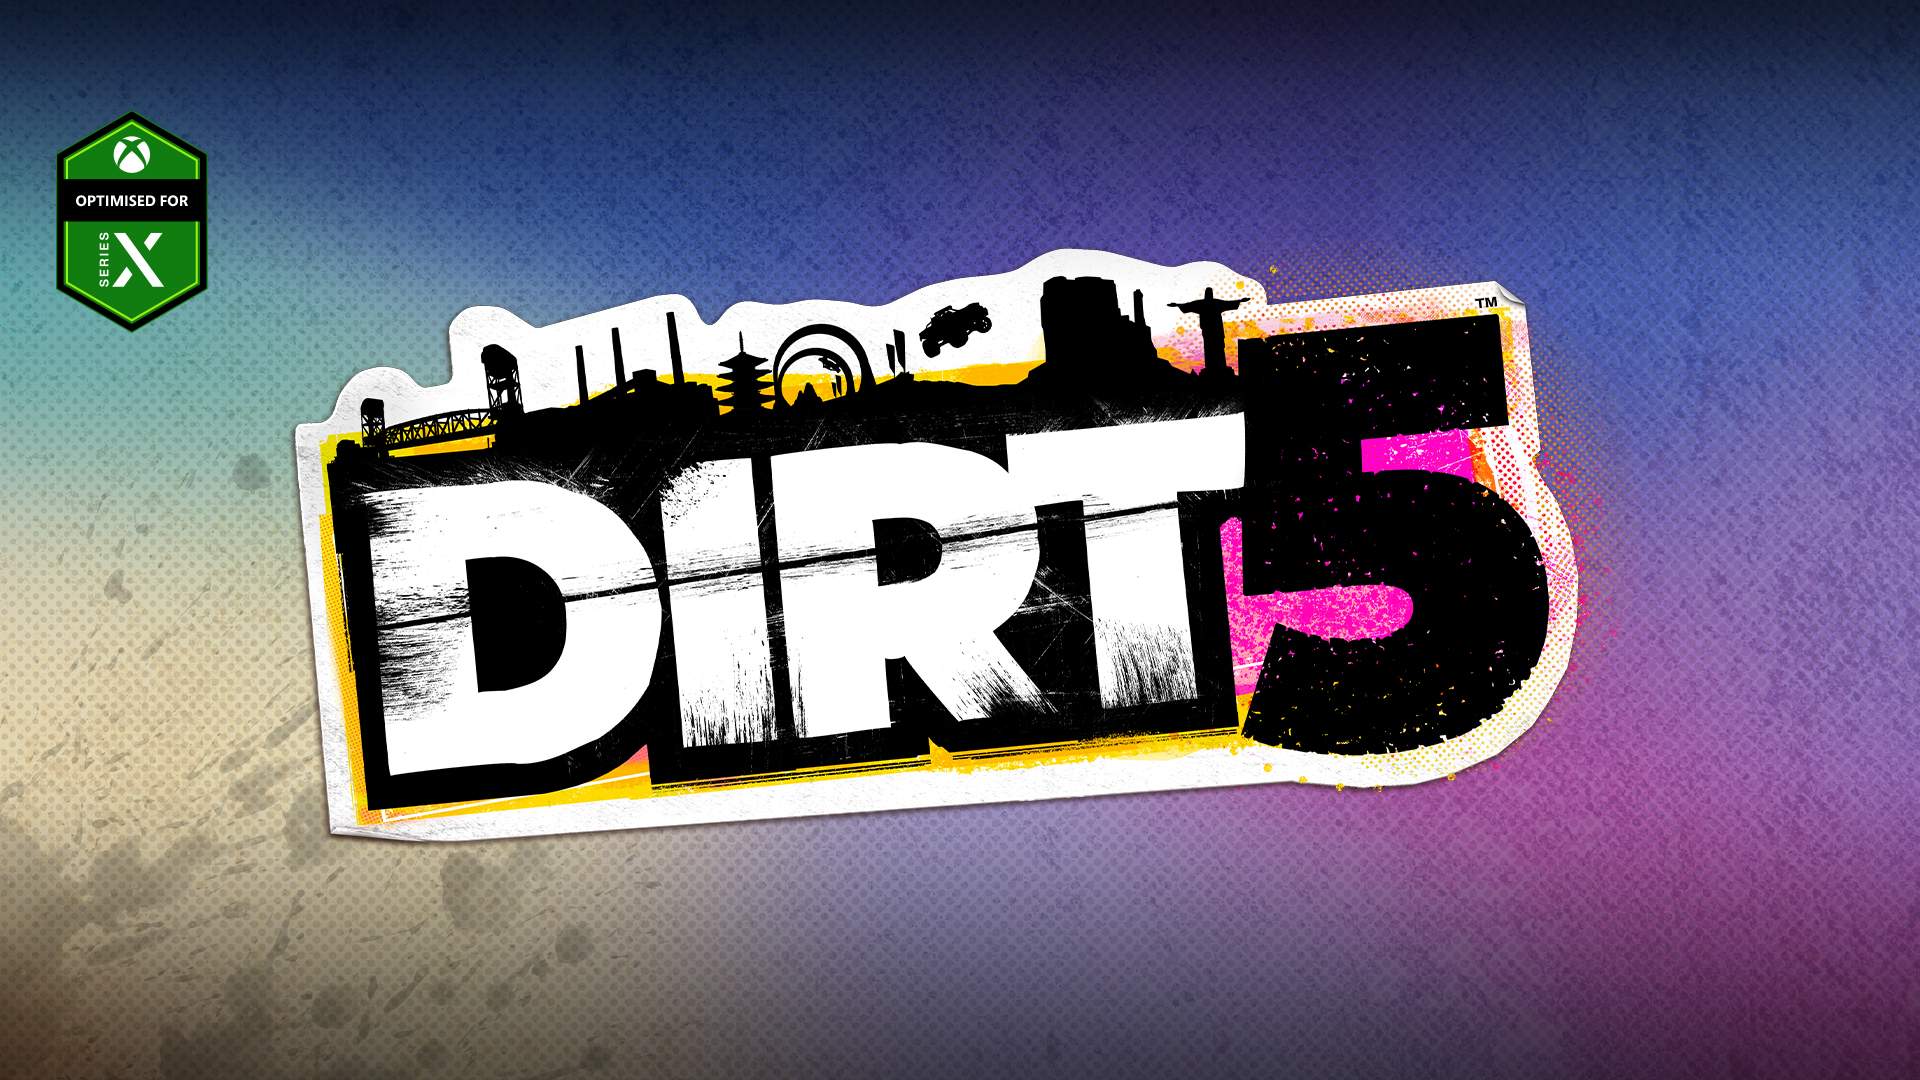 Optimised for Series X logo, DIRT 5 logo on a colourful background